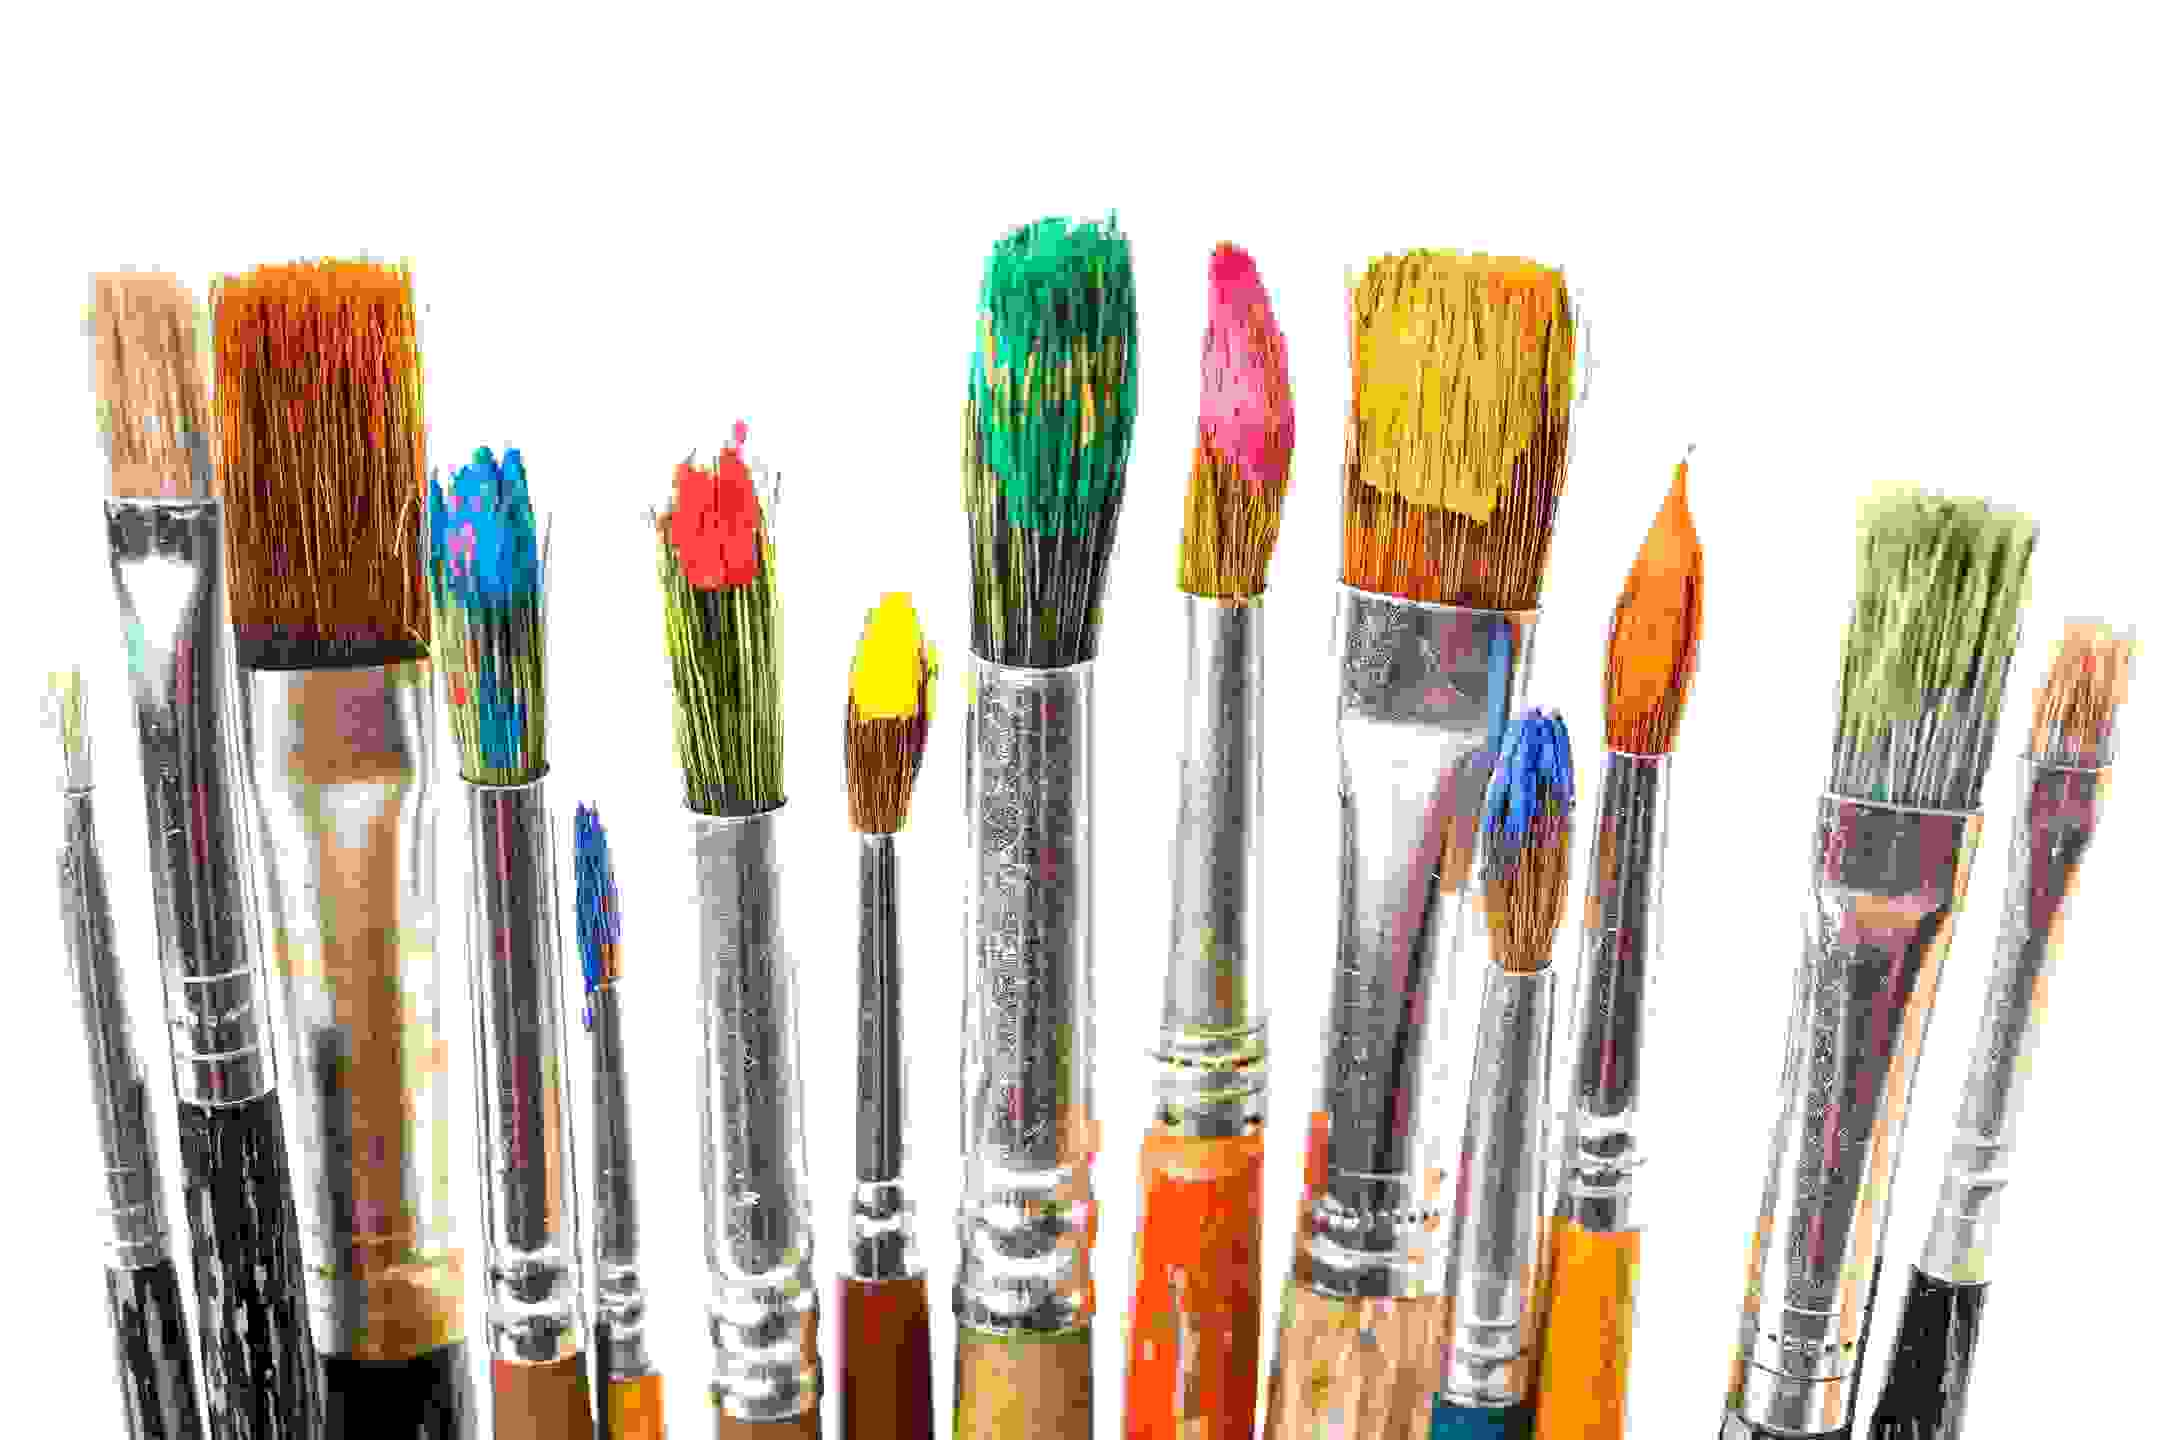 Paintbrushes covered in paint.